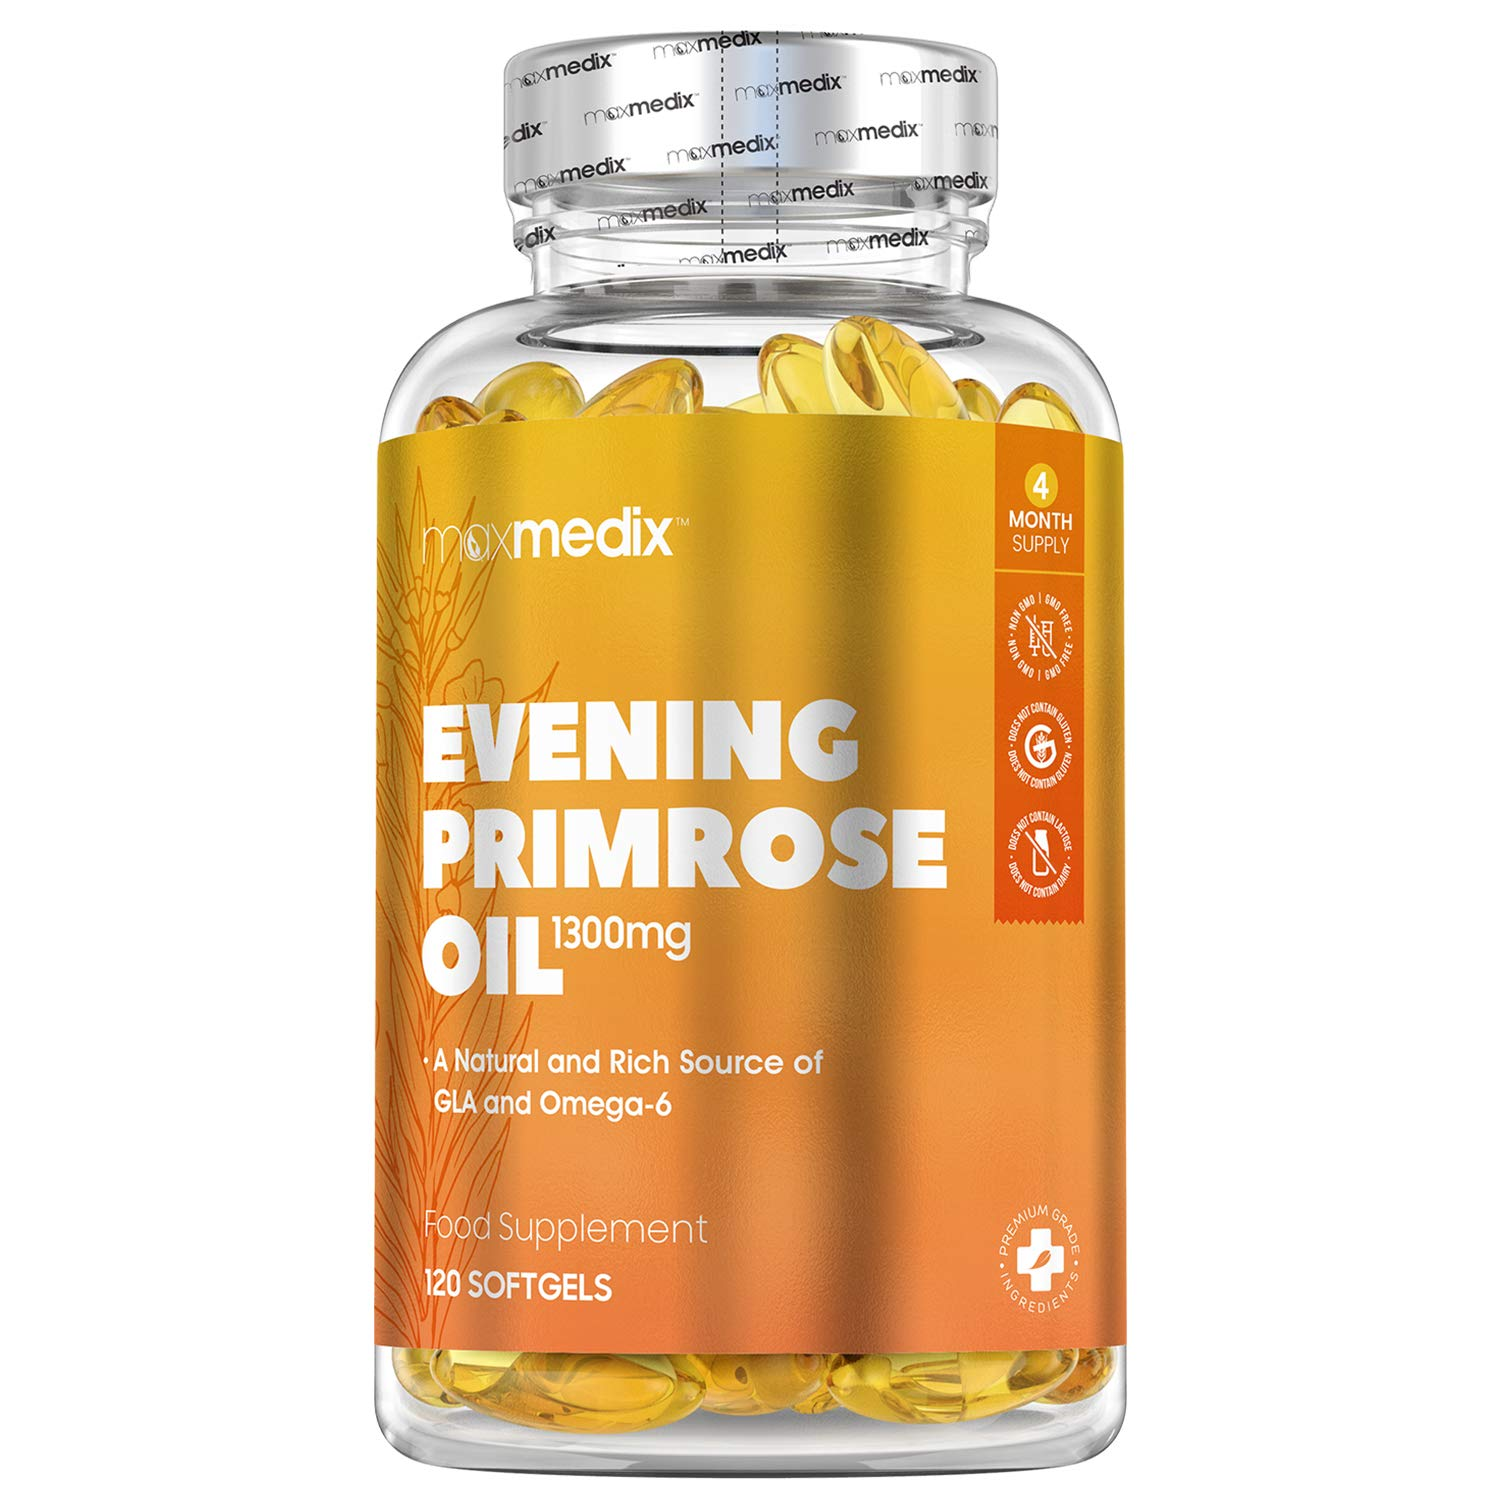 Evening Primrose Capsules 1300mg - 120 Softgels - High Strength Evening Primrose Oil Capsules for Vitality, Women Supplements, Omega 6 Oil Supplement, Skin, Pregnancy Vitamin